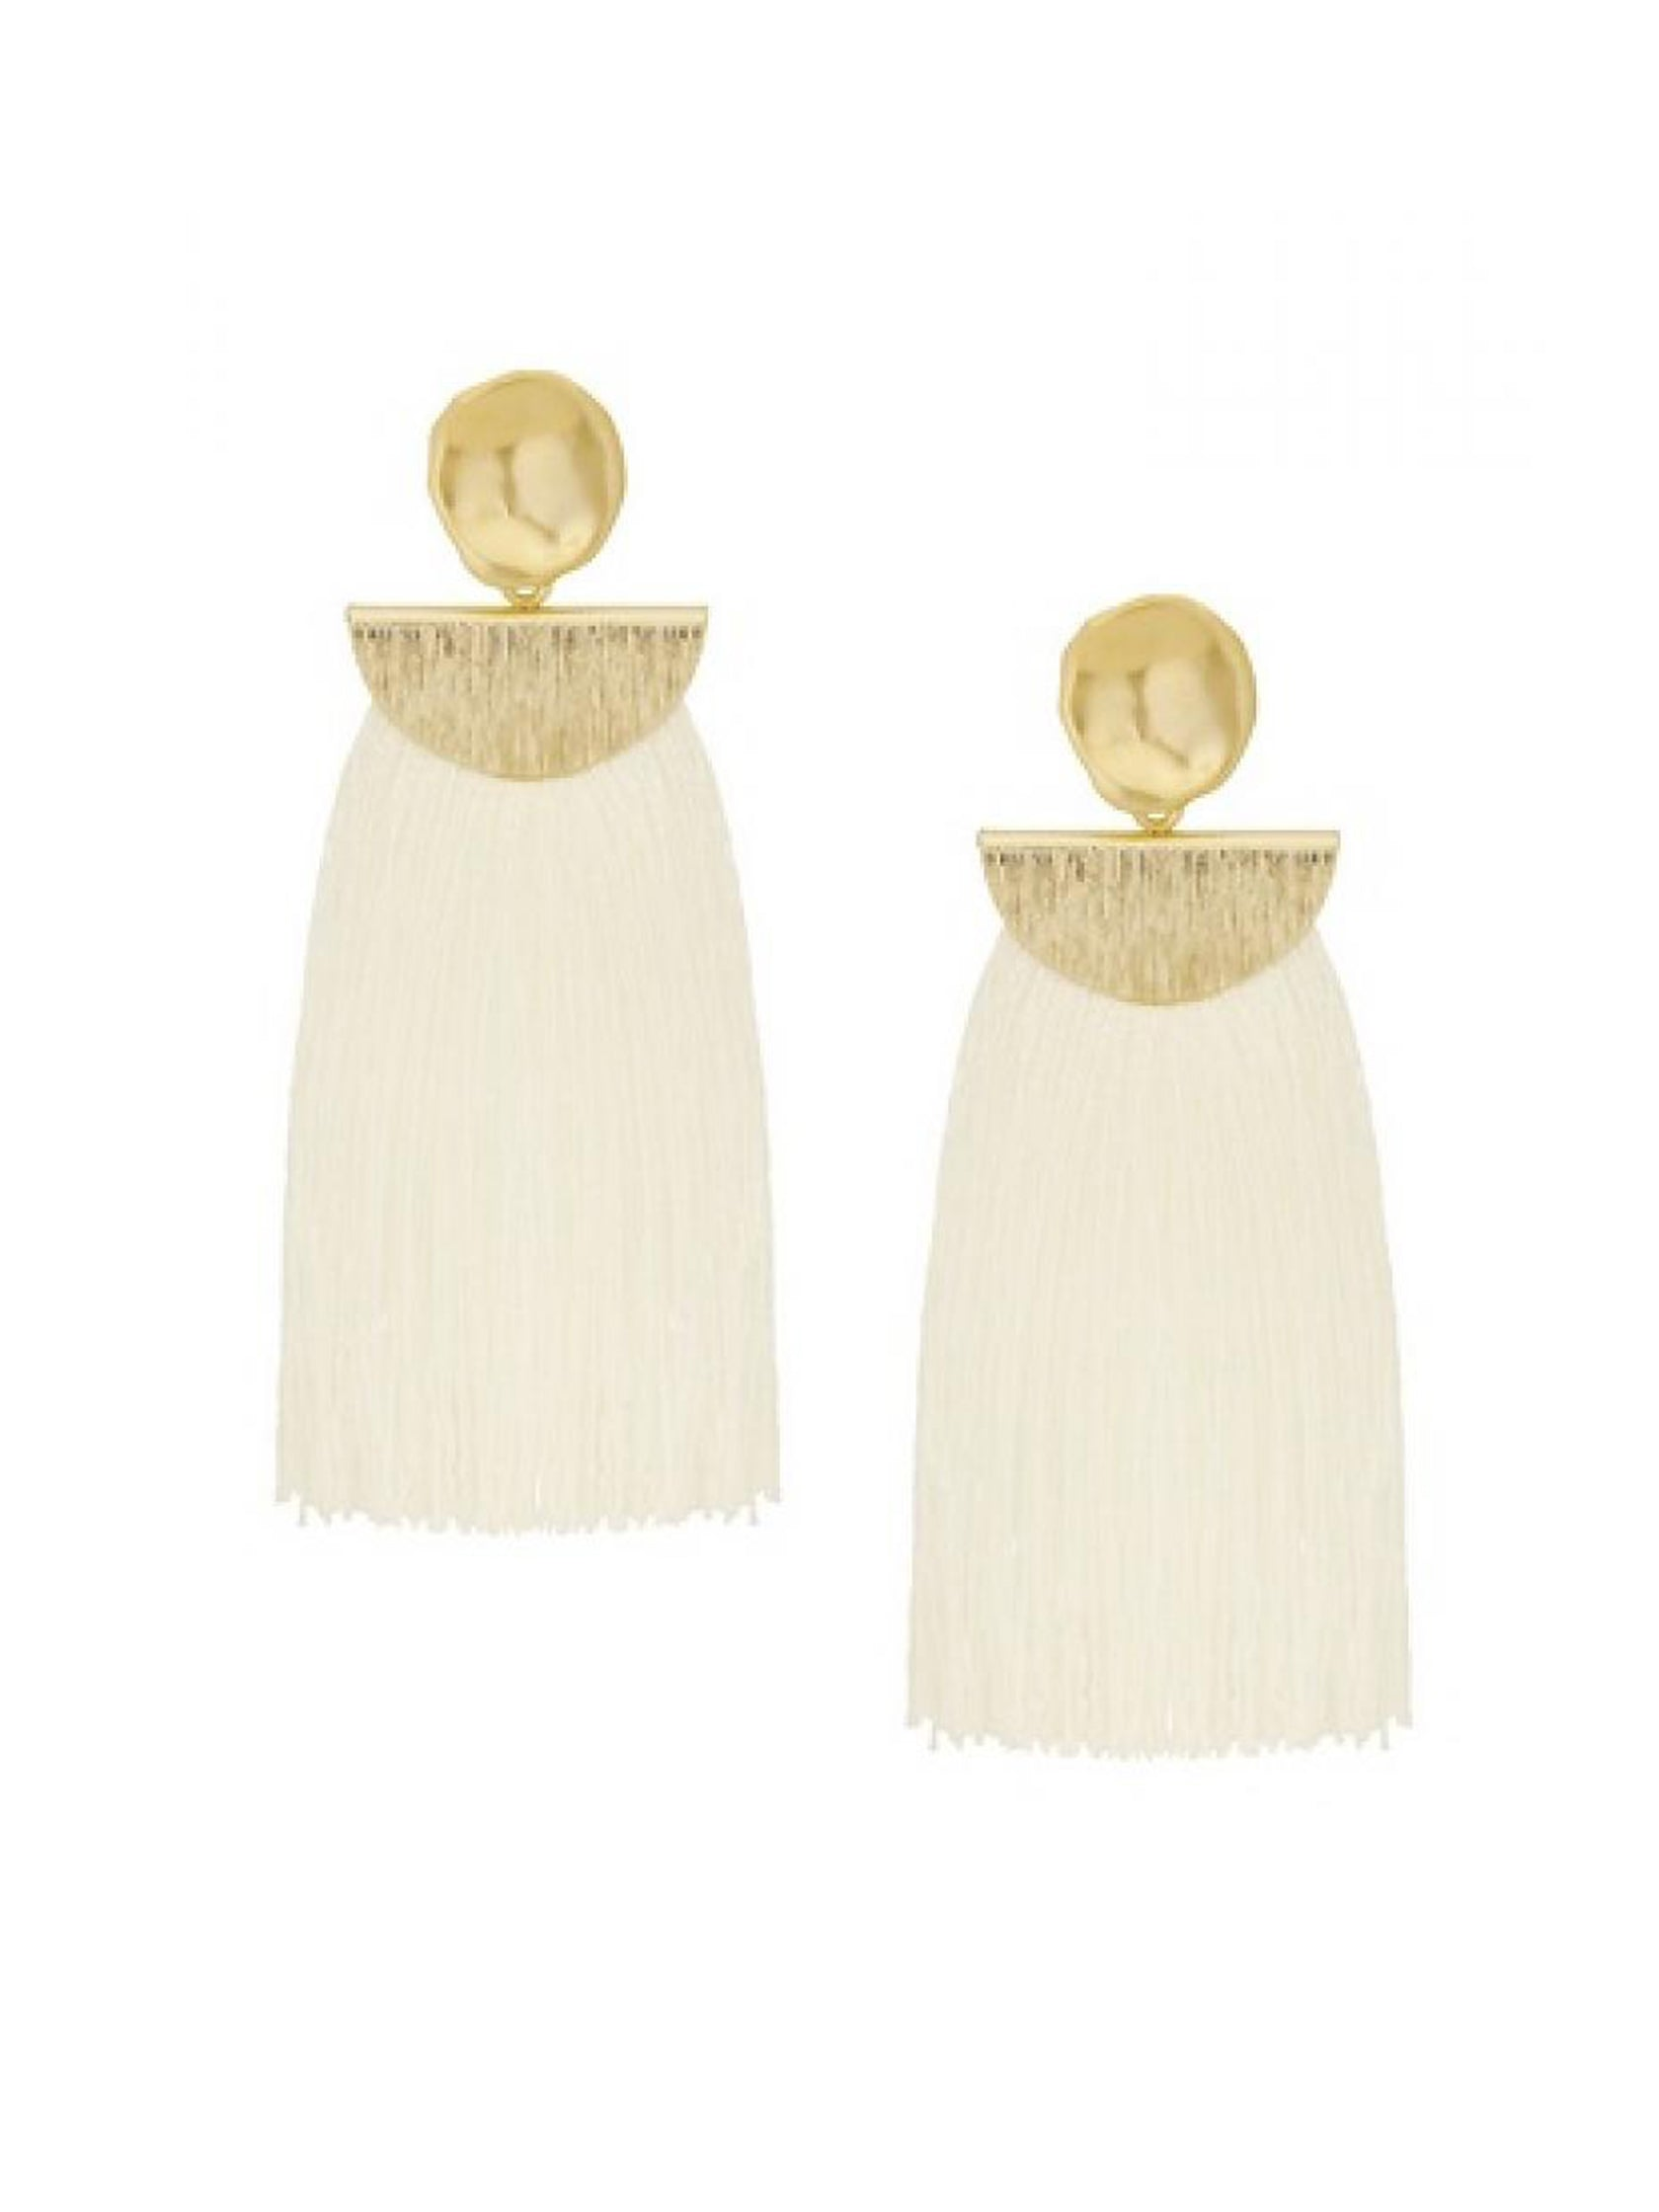 Women outfit in a earrings rental from Five and Two called Ellie White Tassel Earring